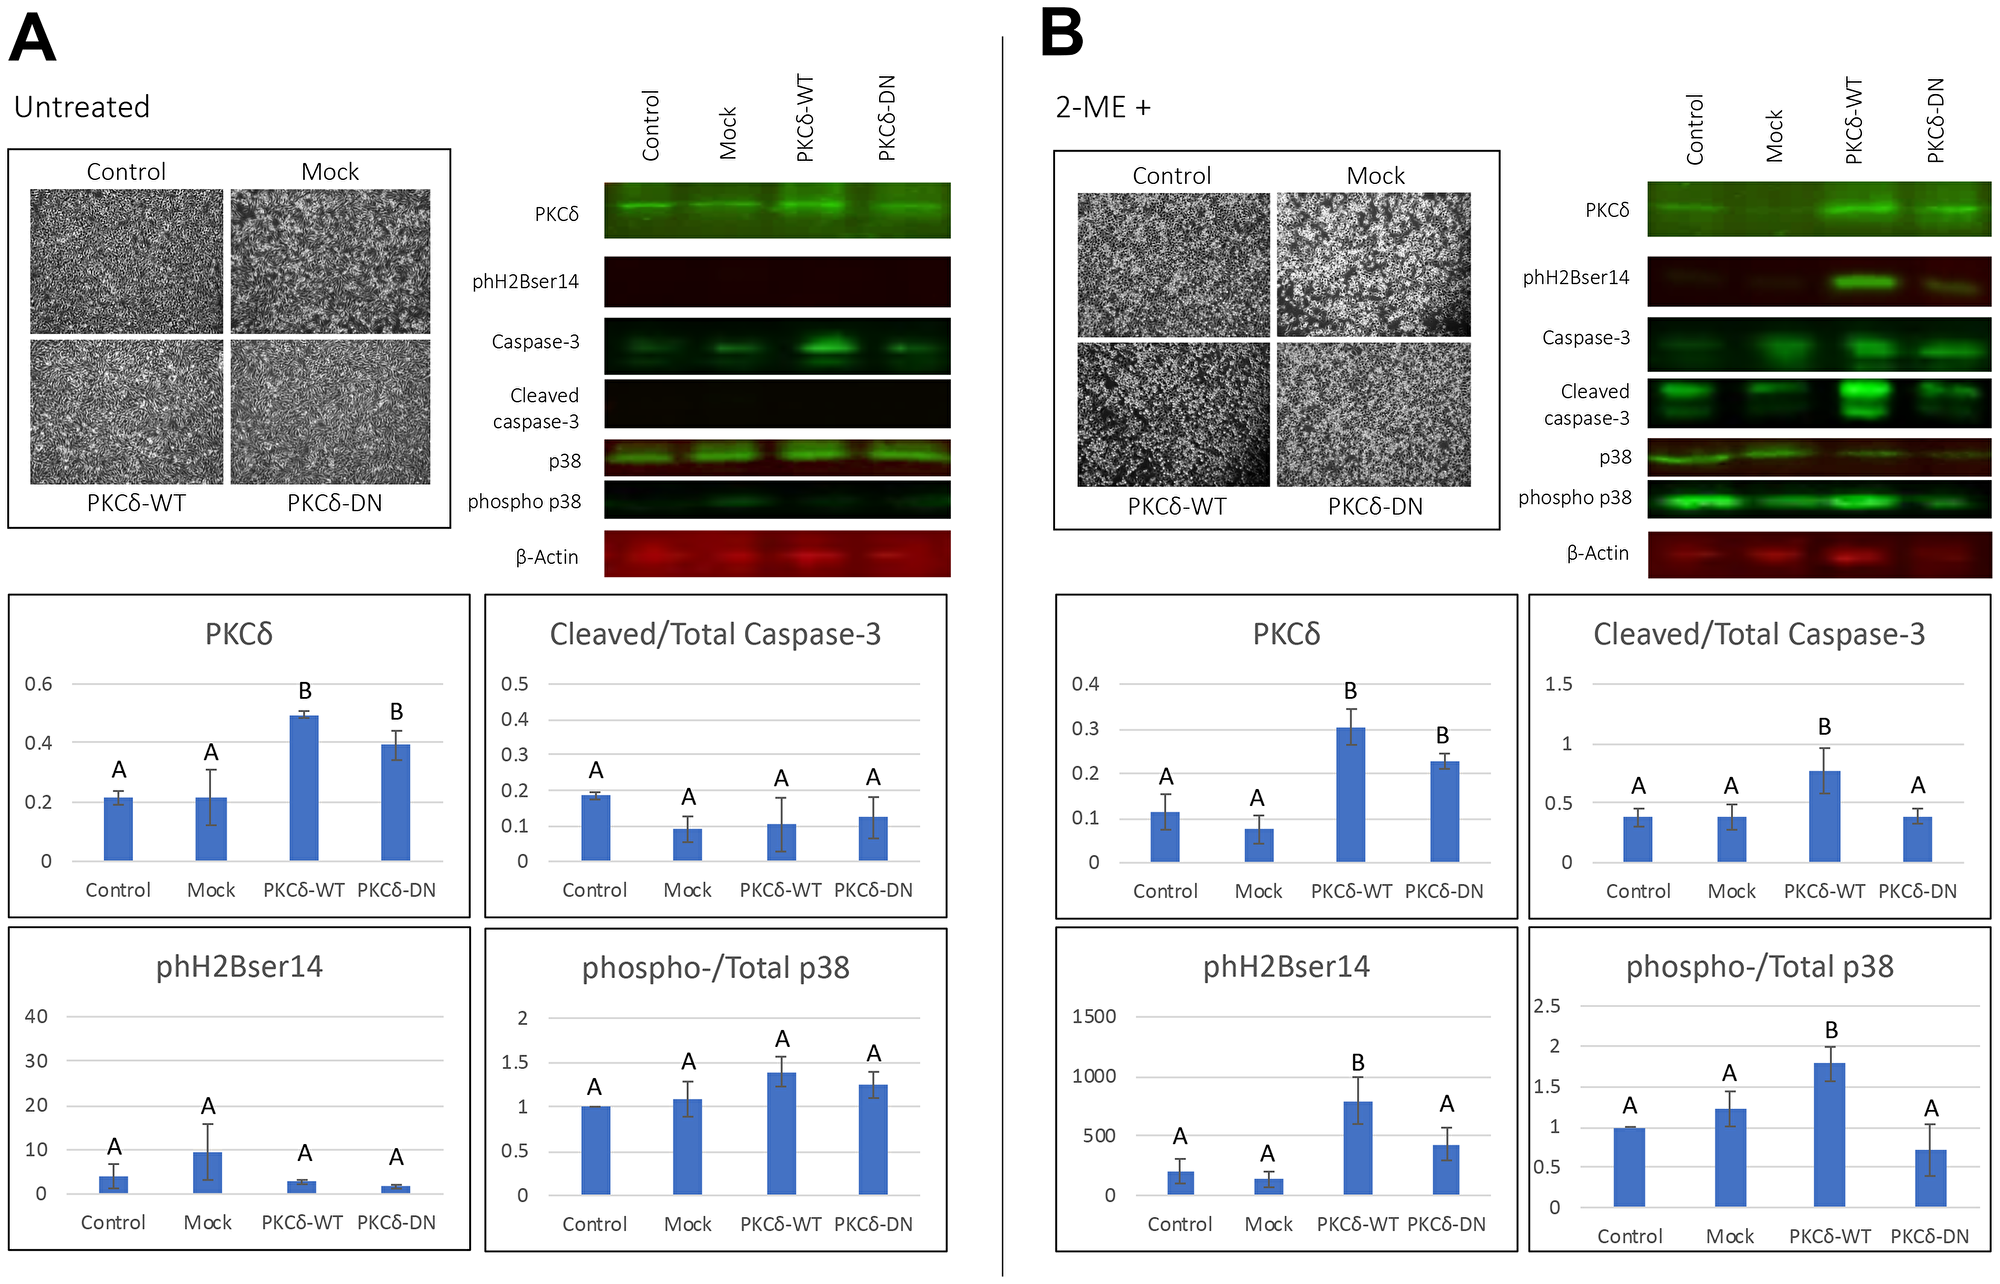 Effect of transient transfection of PKCδWT and PKCδDN to human ovarian cancer cells.